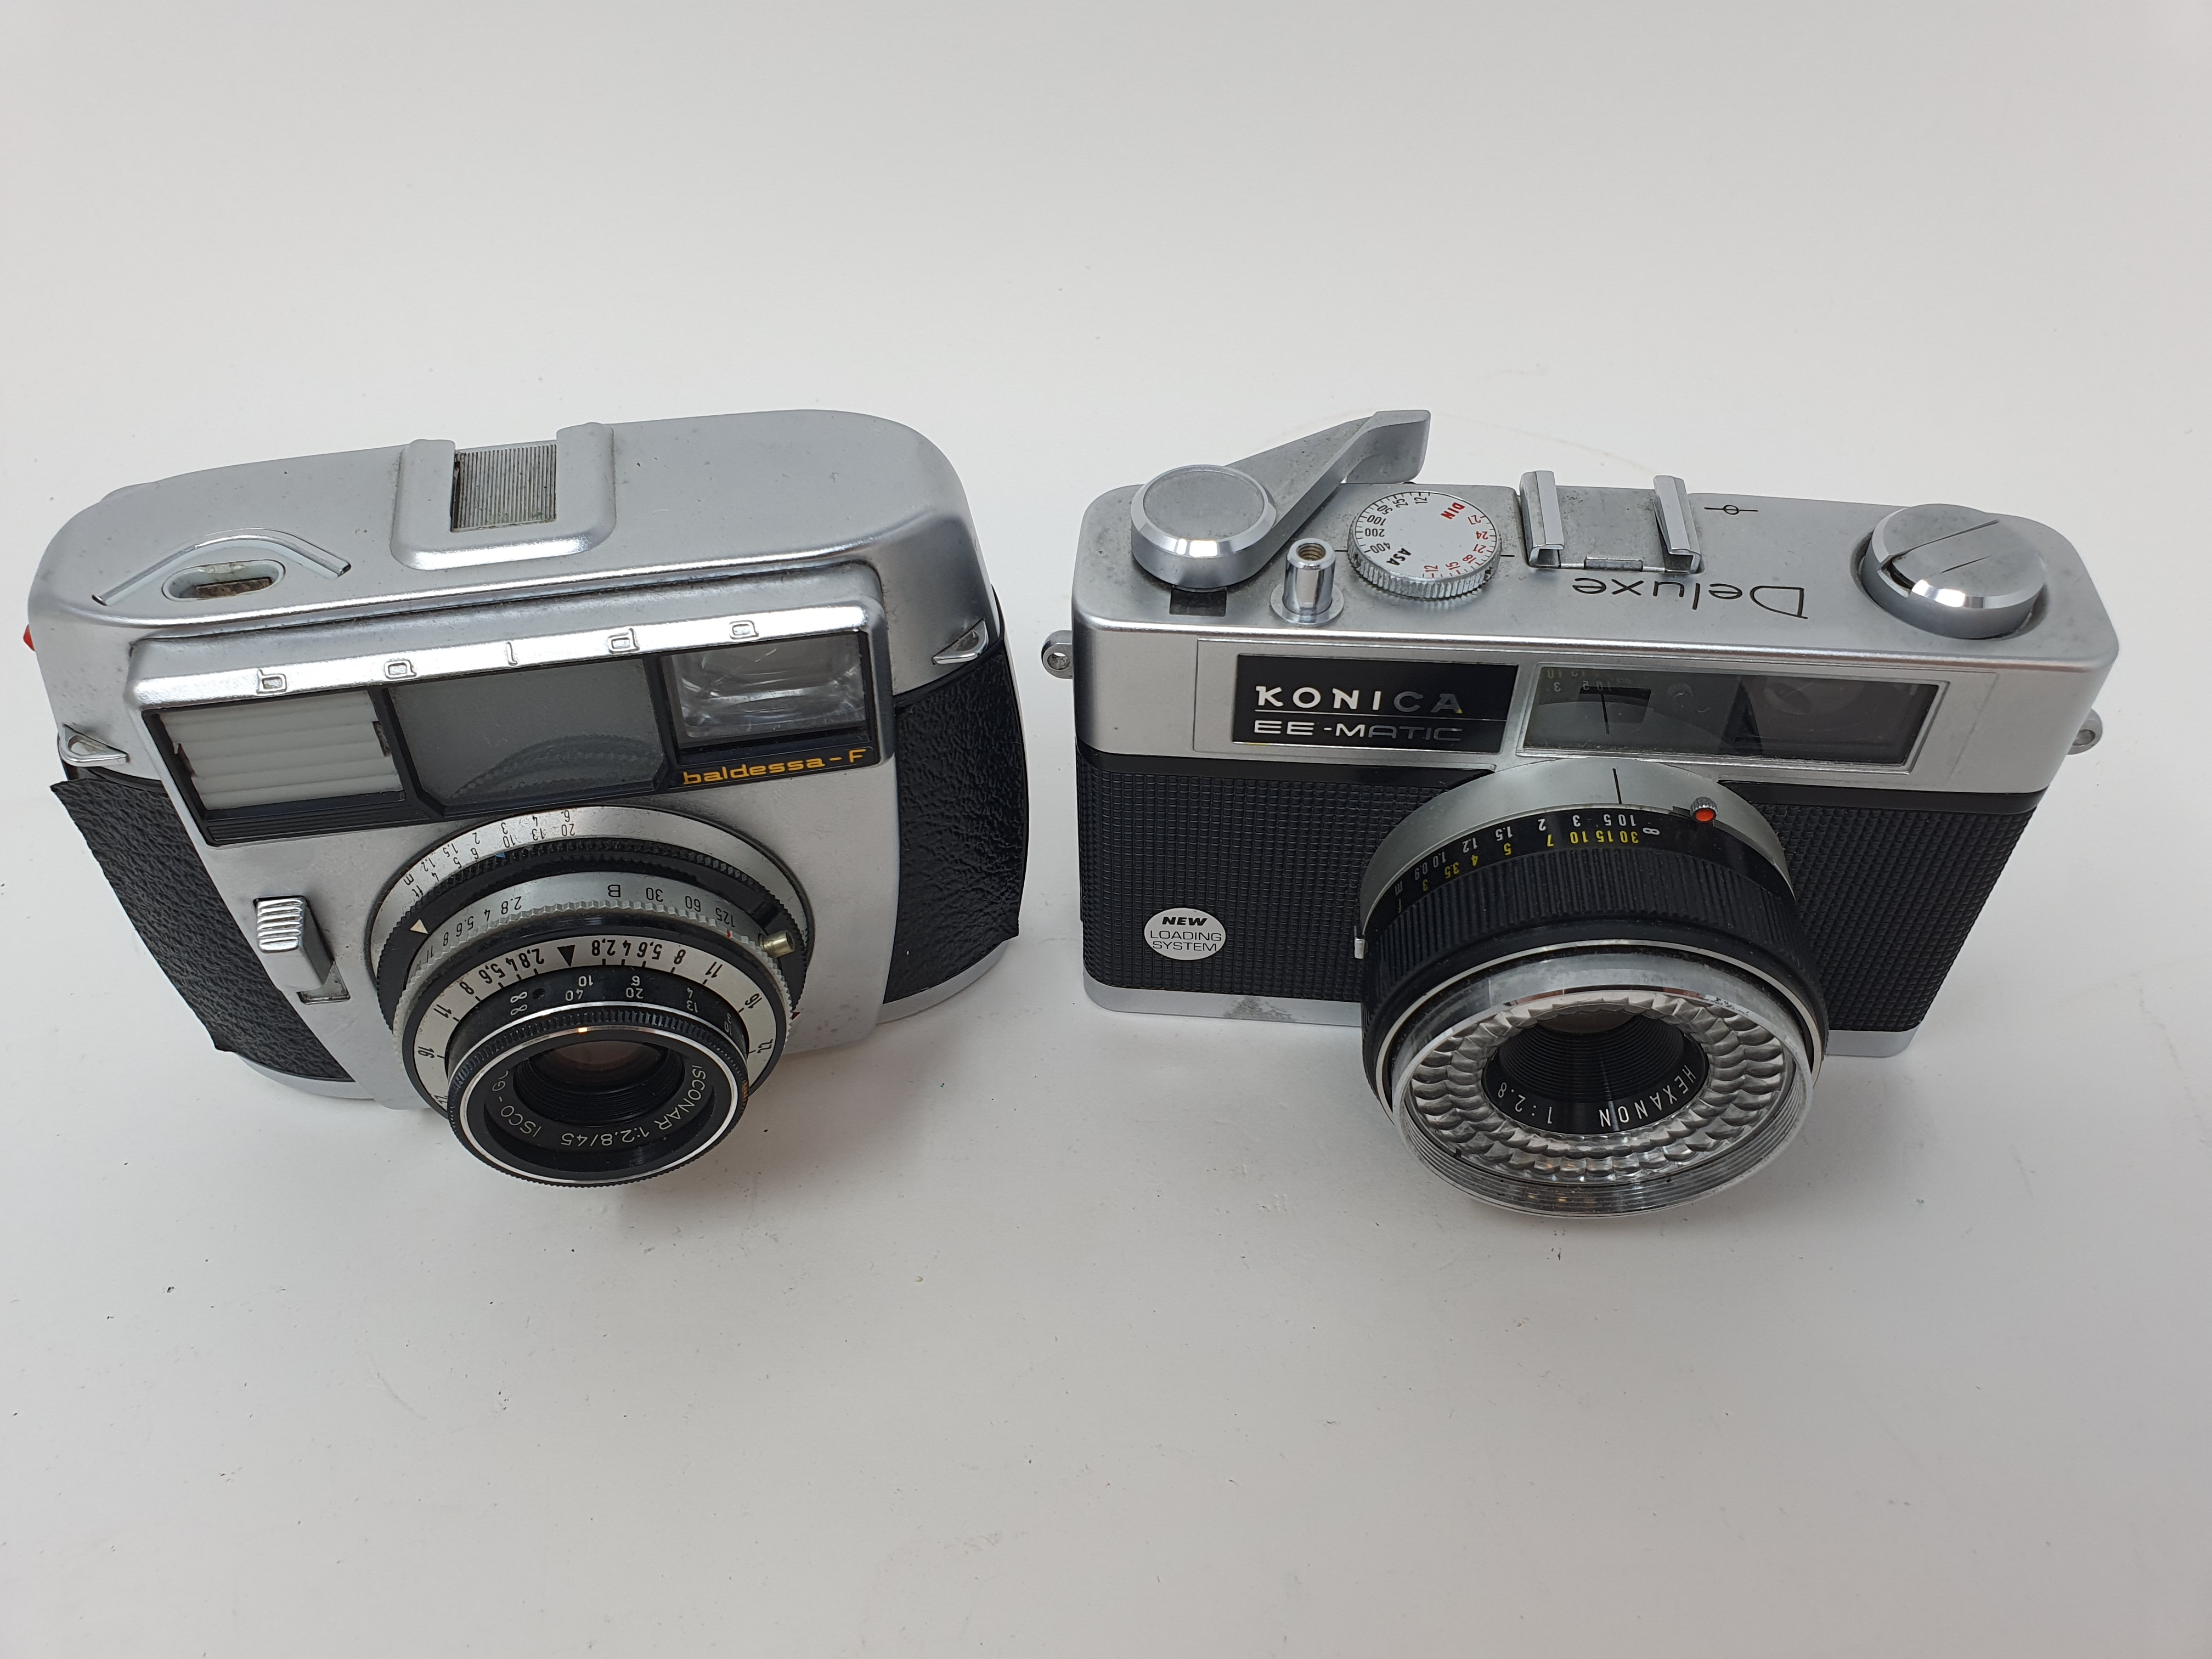 A Baldessa-F camera and a Konica EE-Matic camera (2) Provenance: Part of a vast single owner - Image 2 of 2